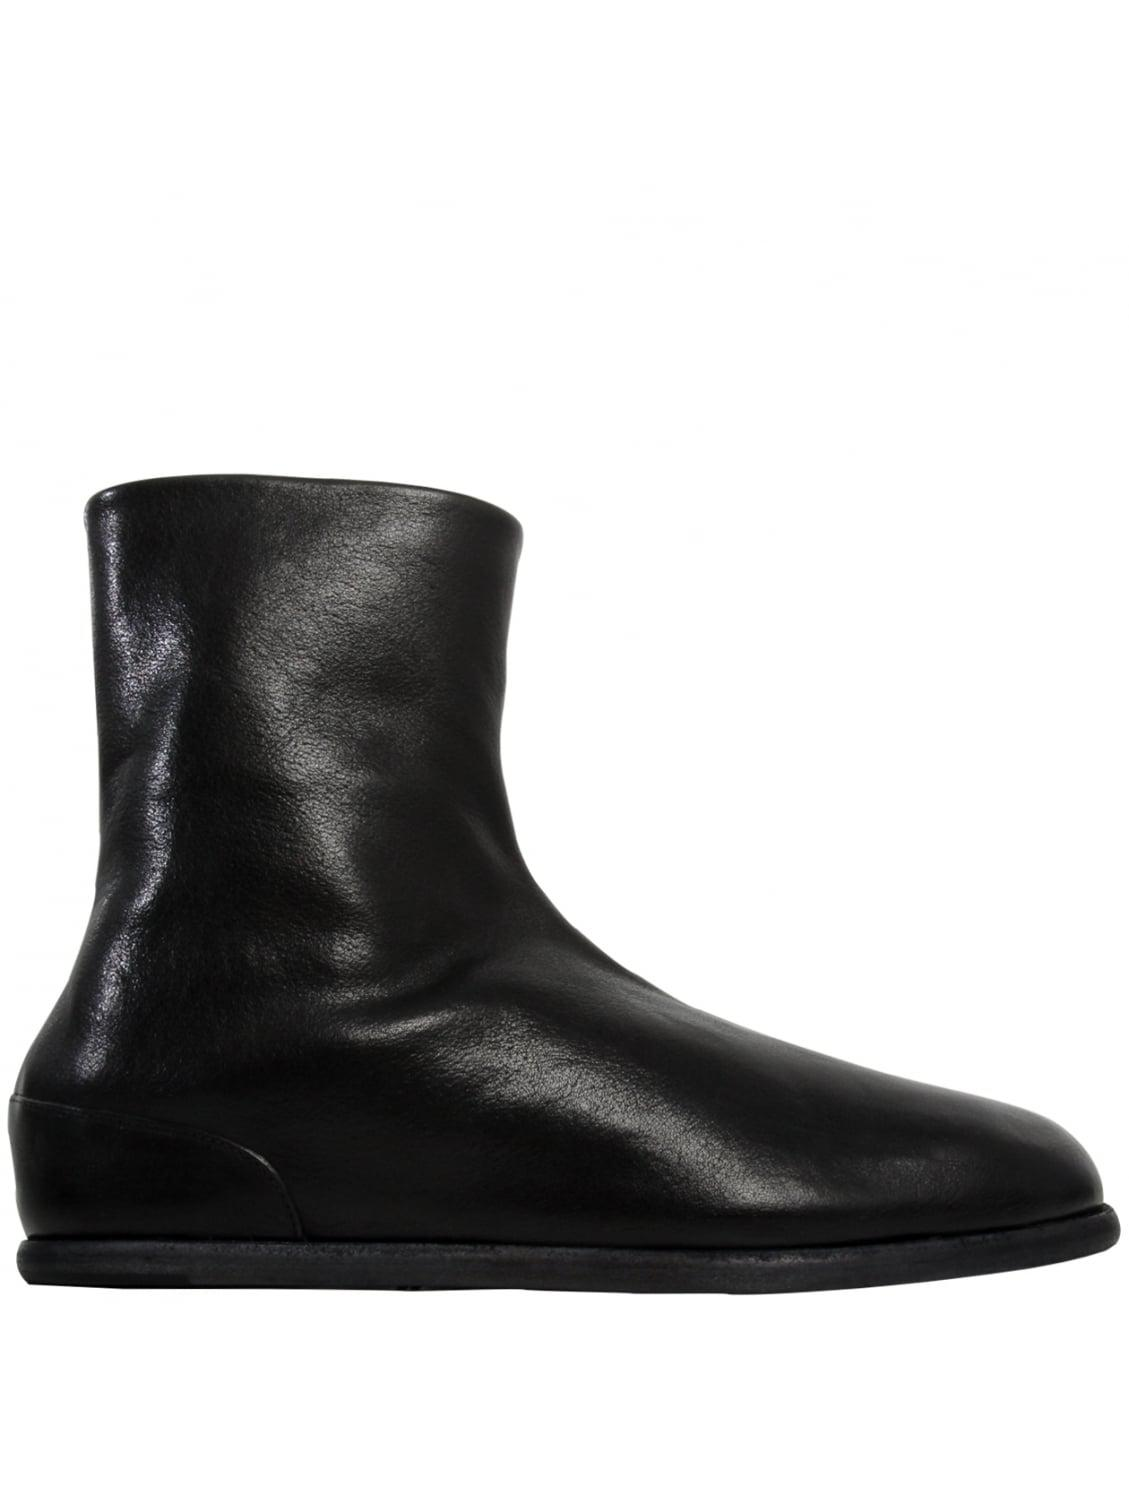 maison margiela tabi leather ankle boots black in black lyst